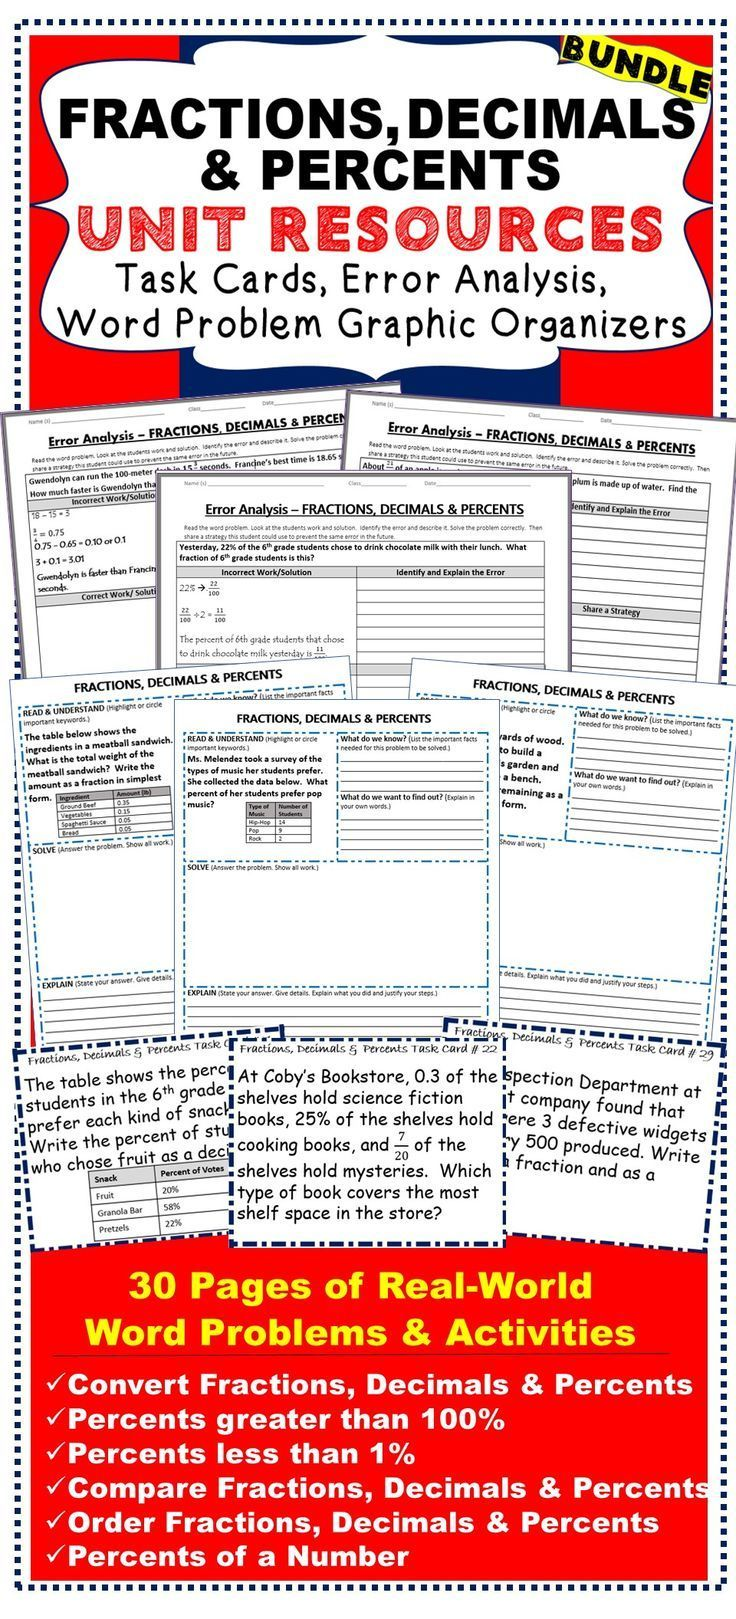 FRACTIONS, DECIMALS, PERCENTS BUNDLE Task Cards, Error Analysis